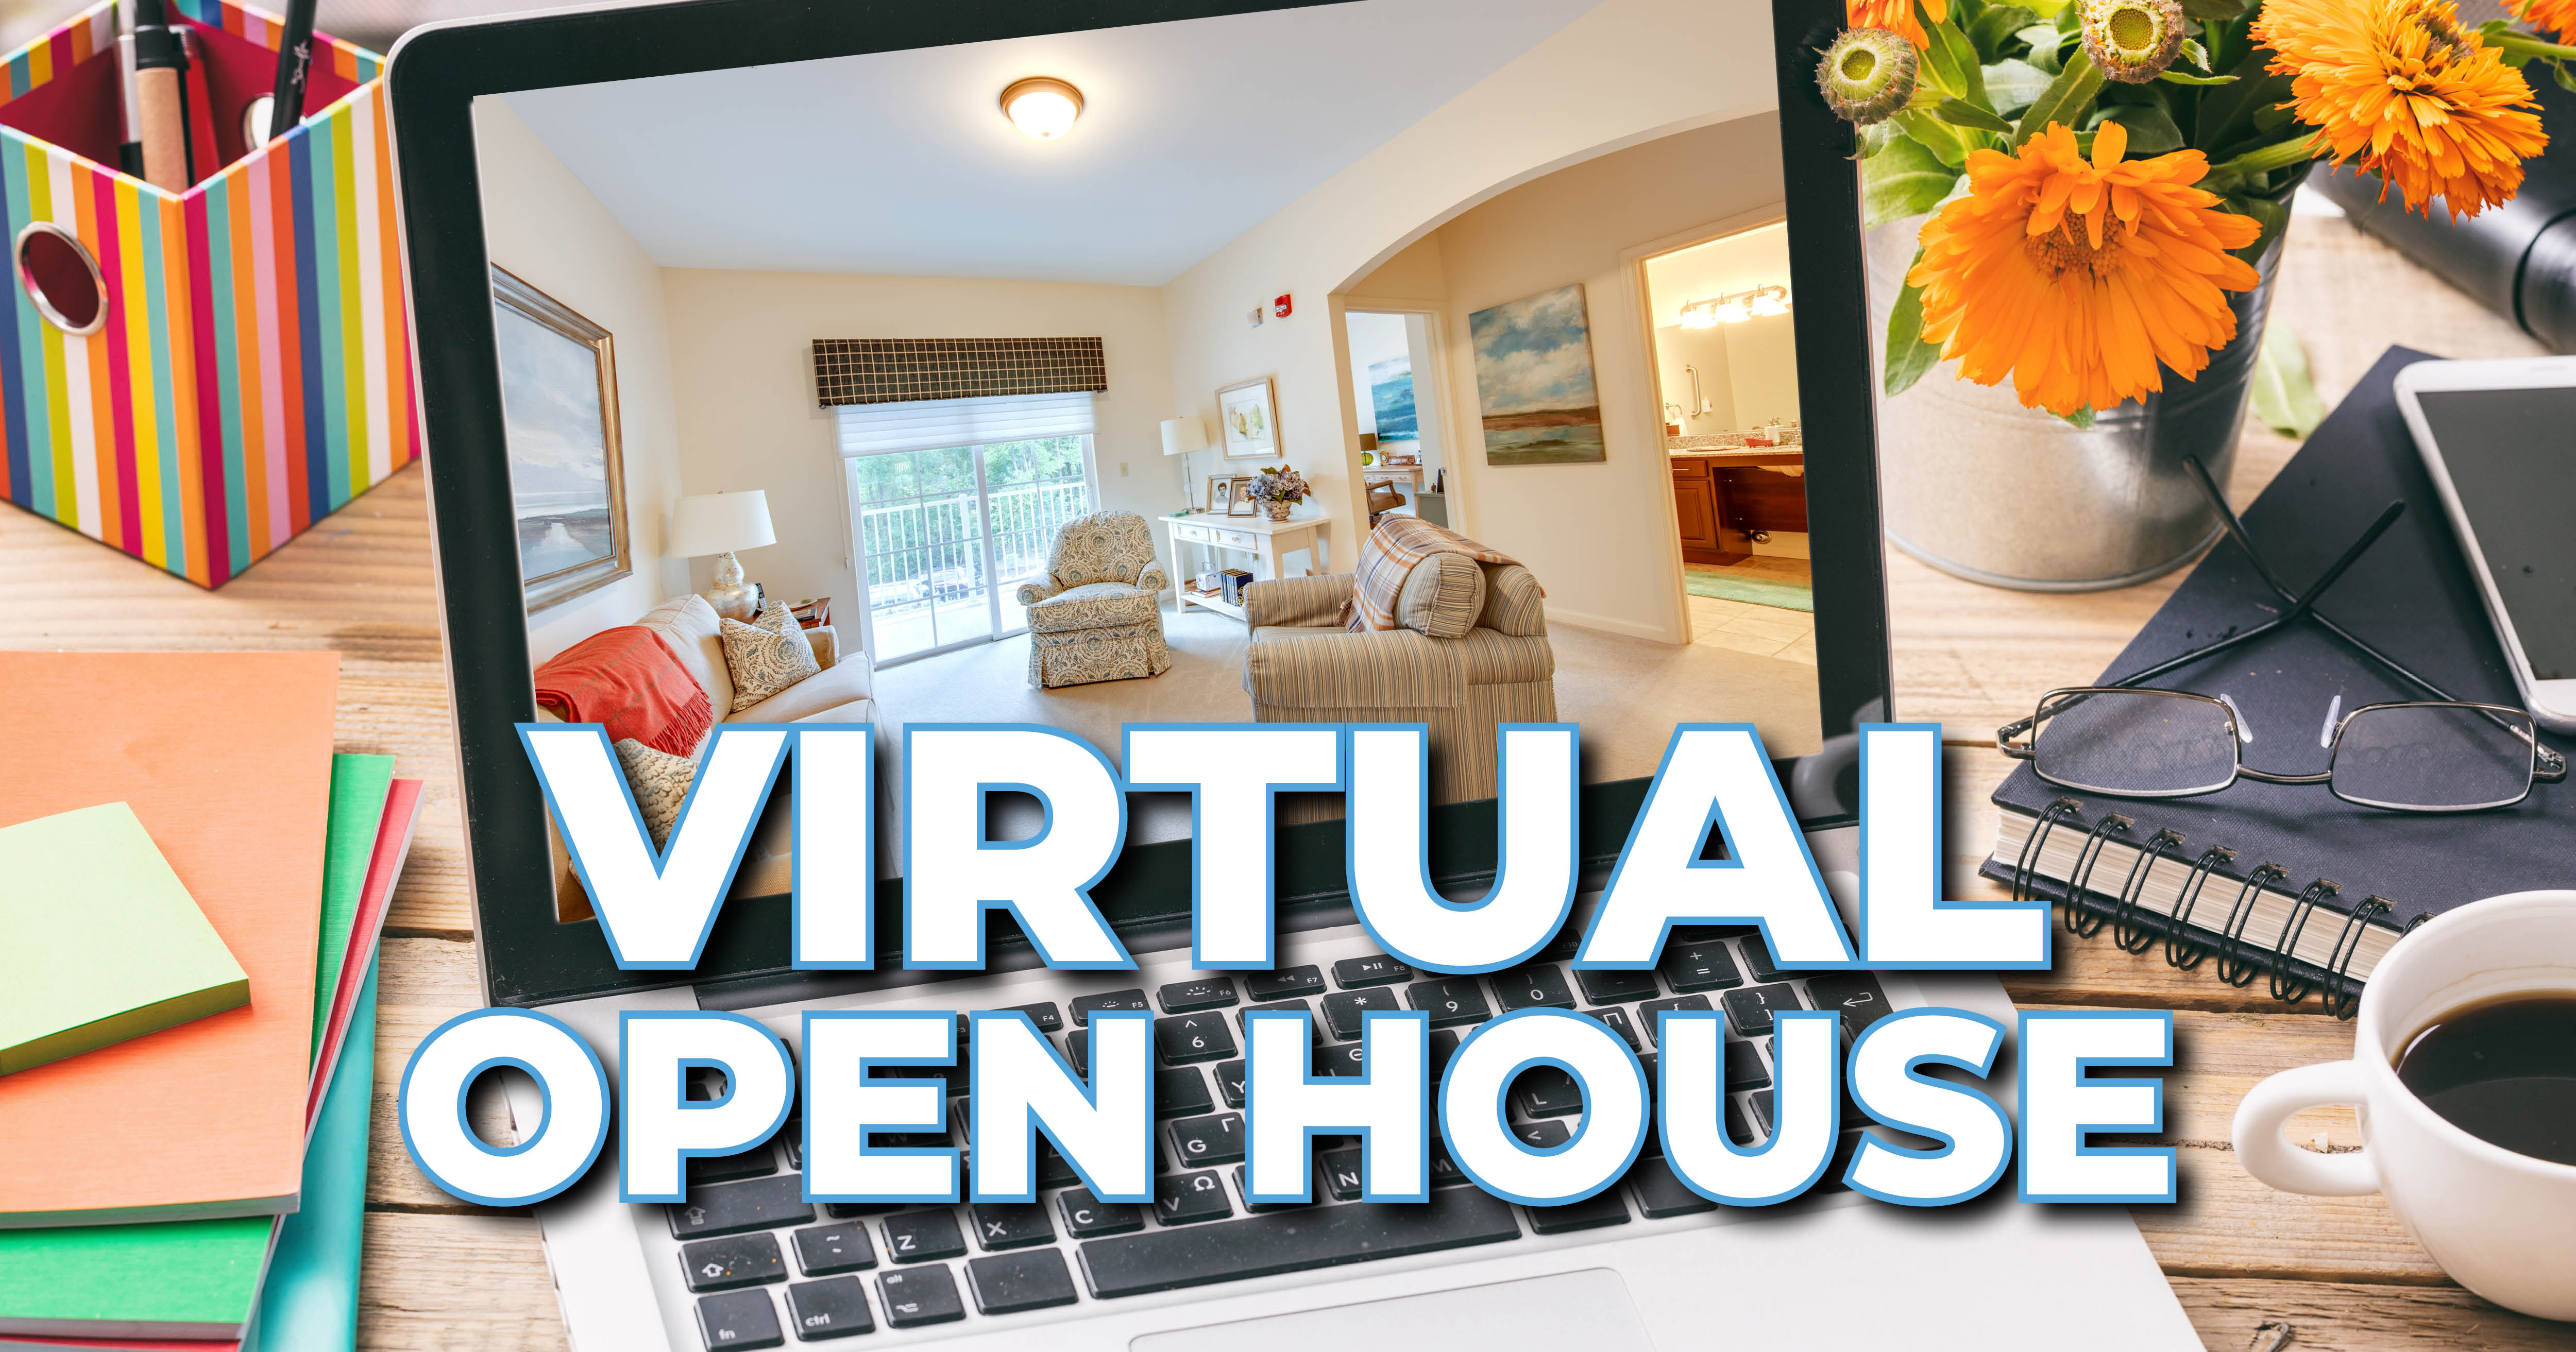 Check out our New Community Virtual Tour